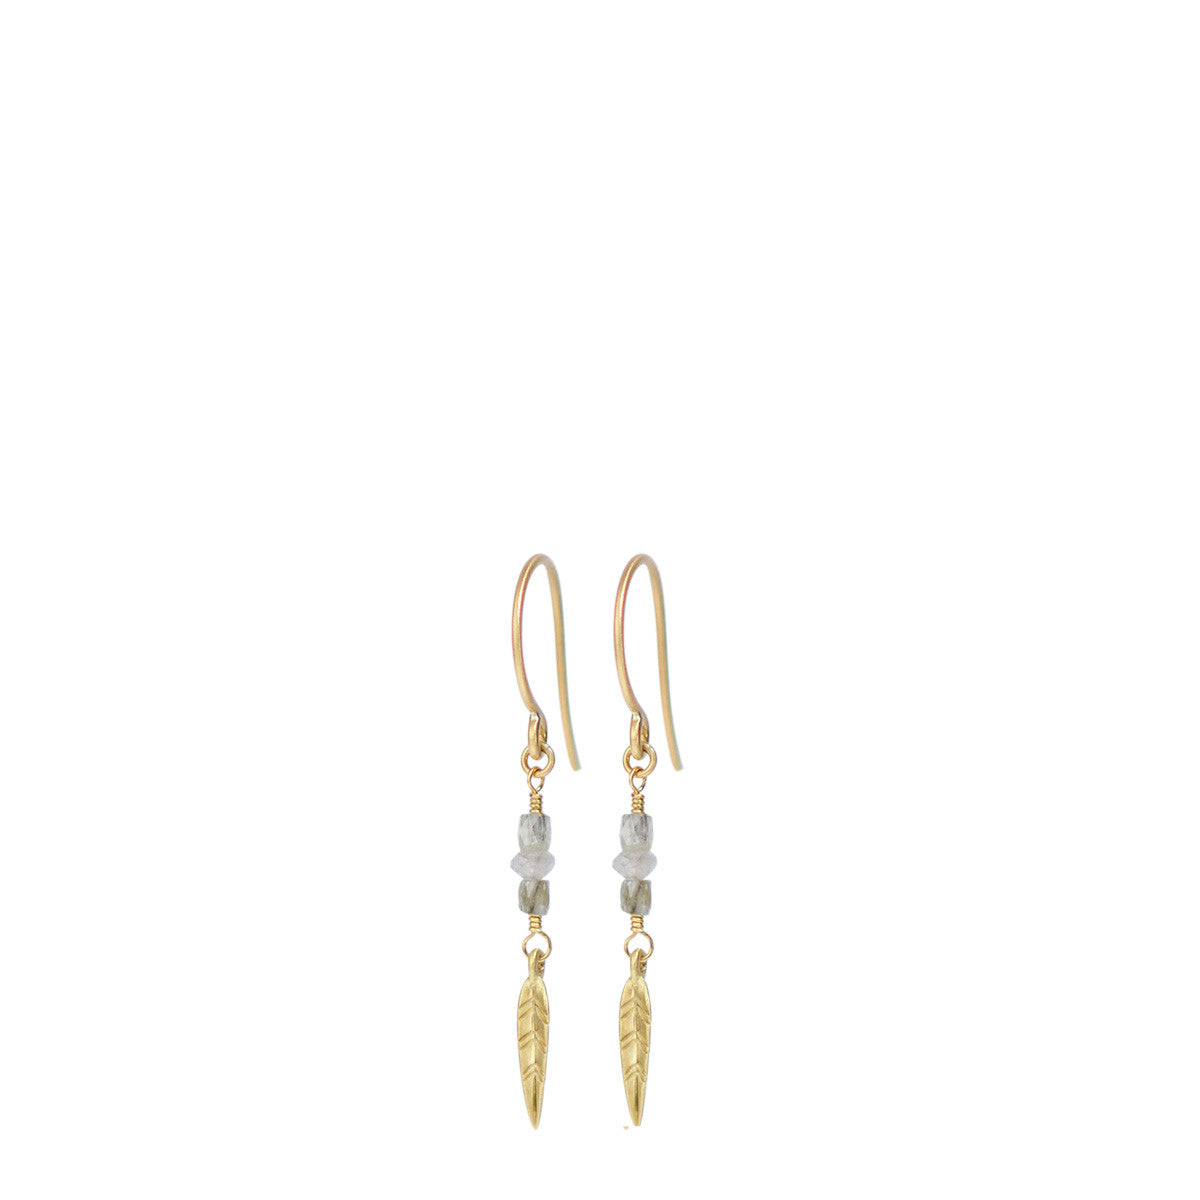 18K Gold Short Grey Diamond Earrings with Feathers